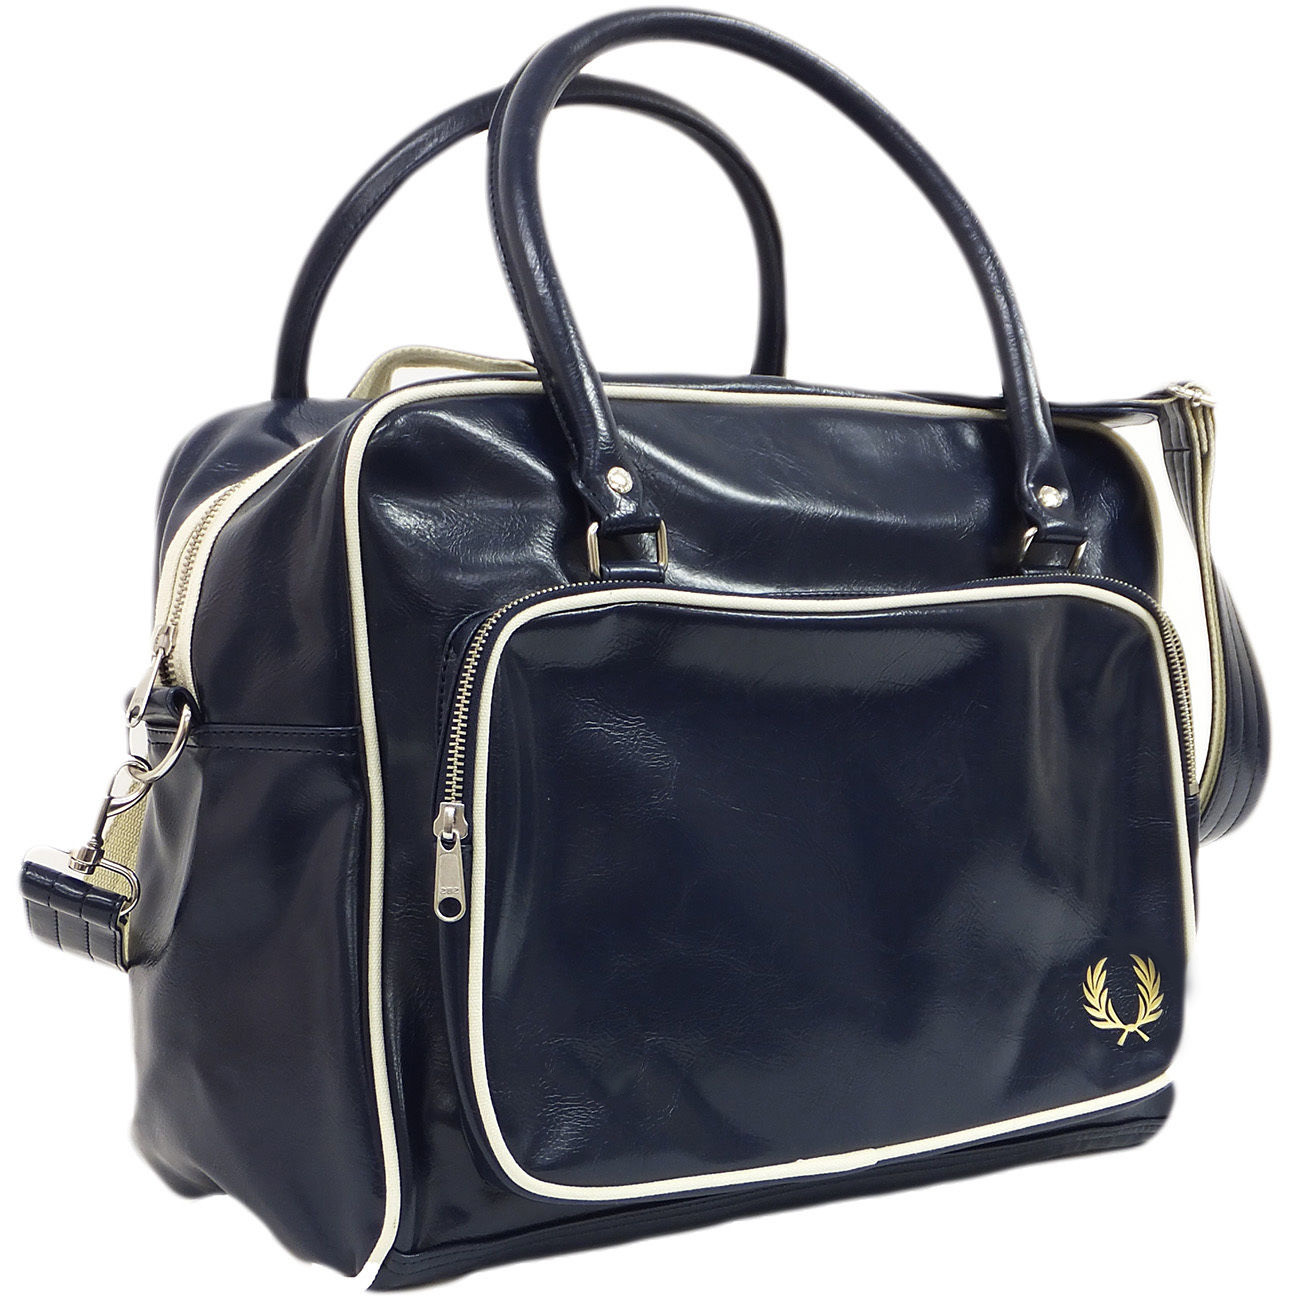 fred perry duffle bag  handbags and purses on bags